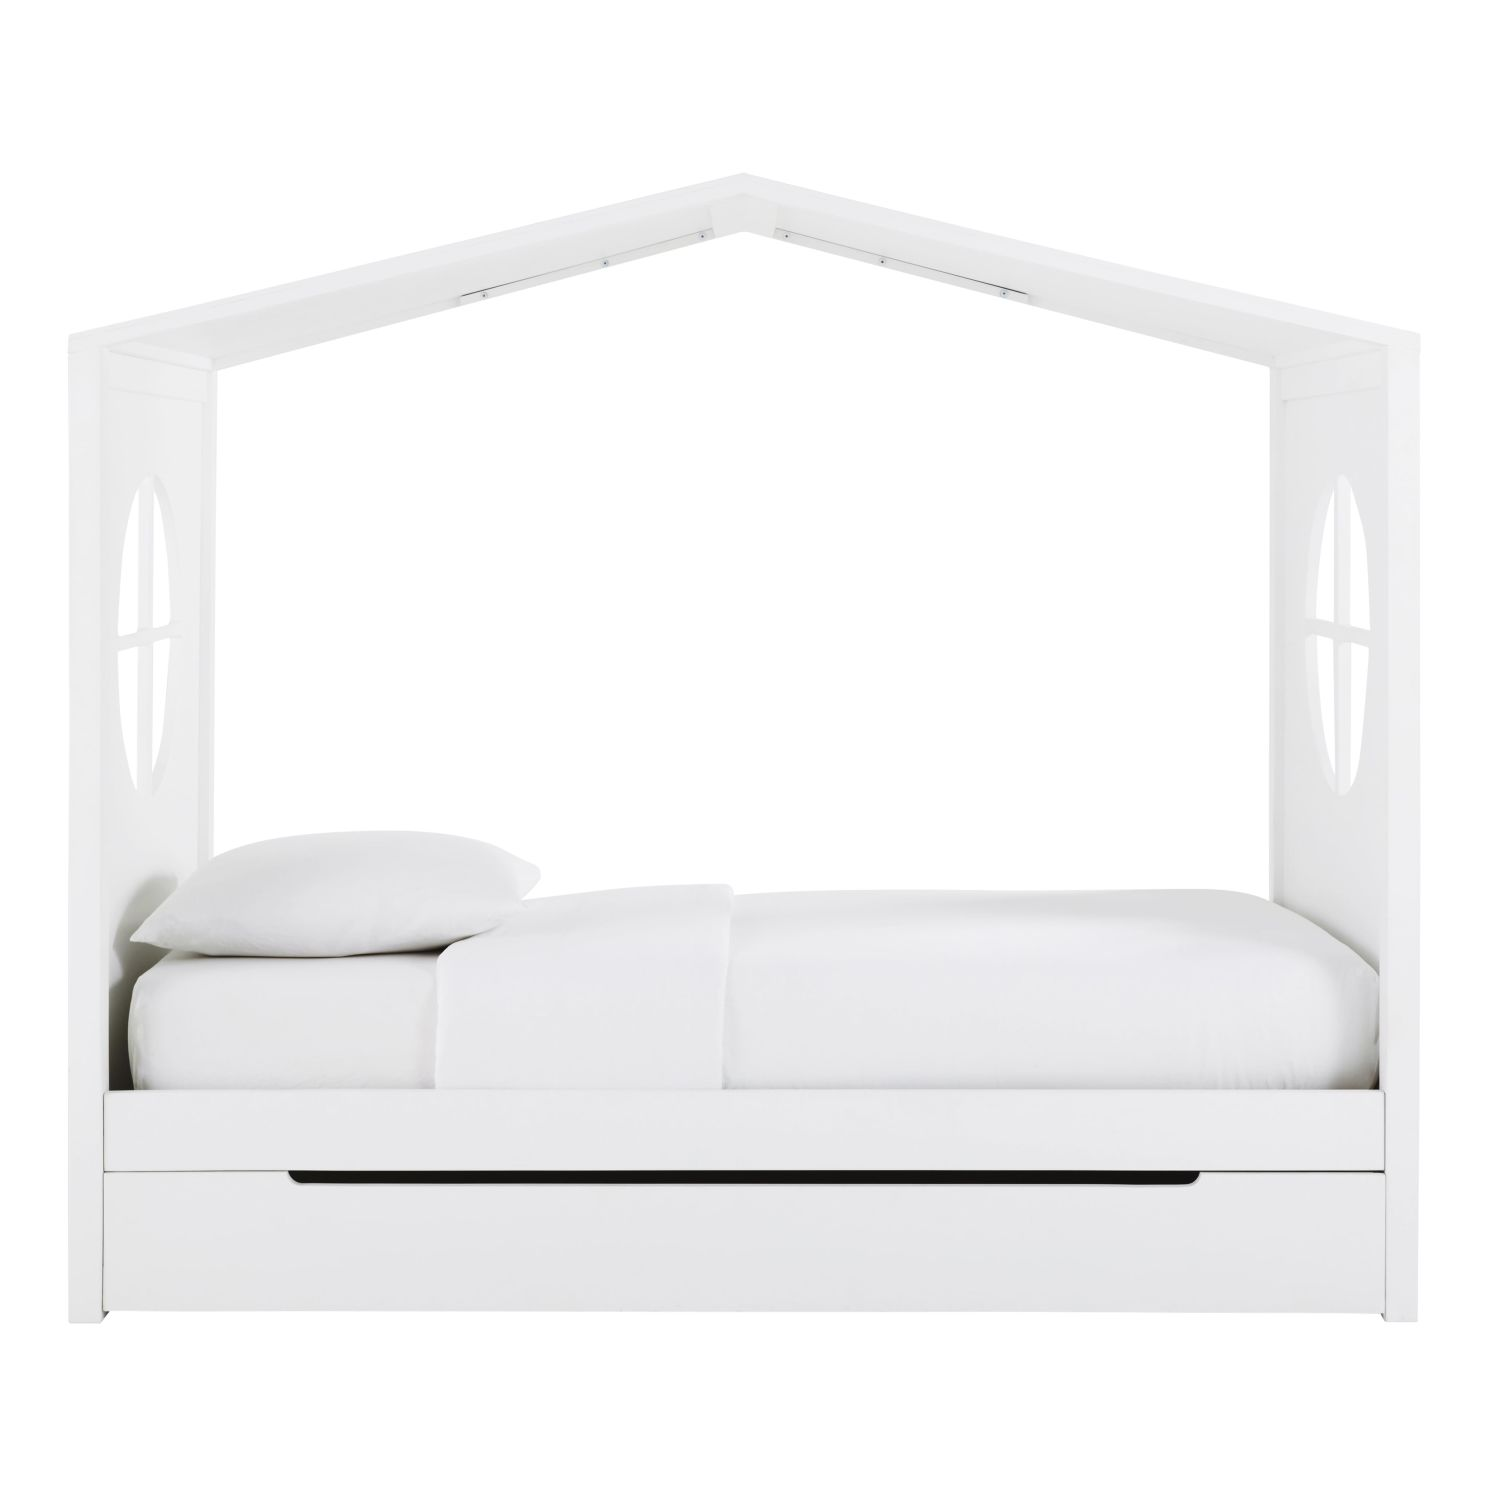 lit cabane enfant 90x190 blanc maisons du monde. Black Bedroom Furniture Sets. Home Design Ideas